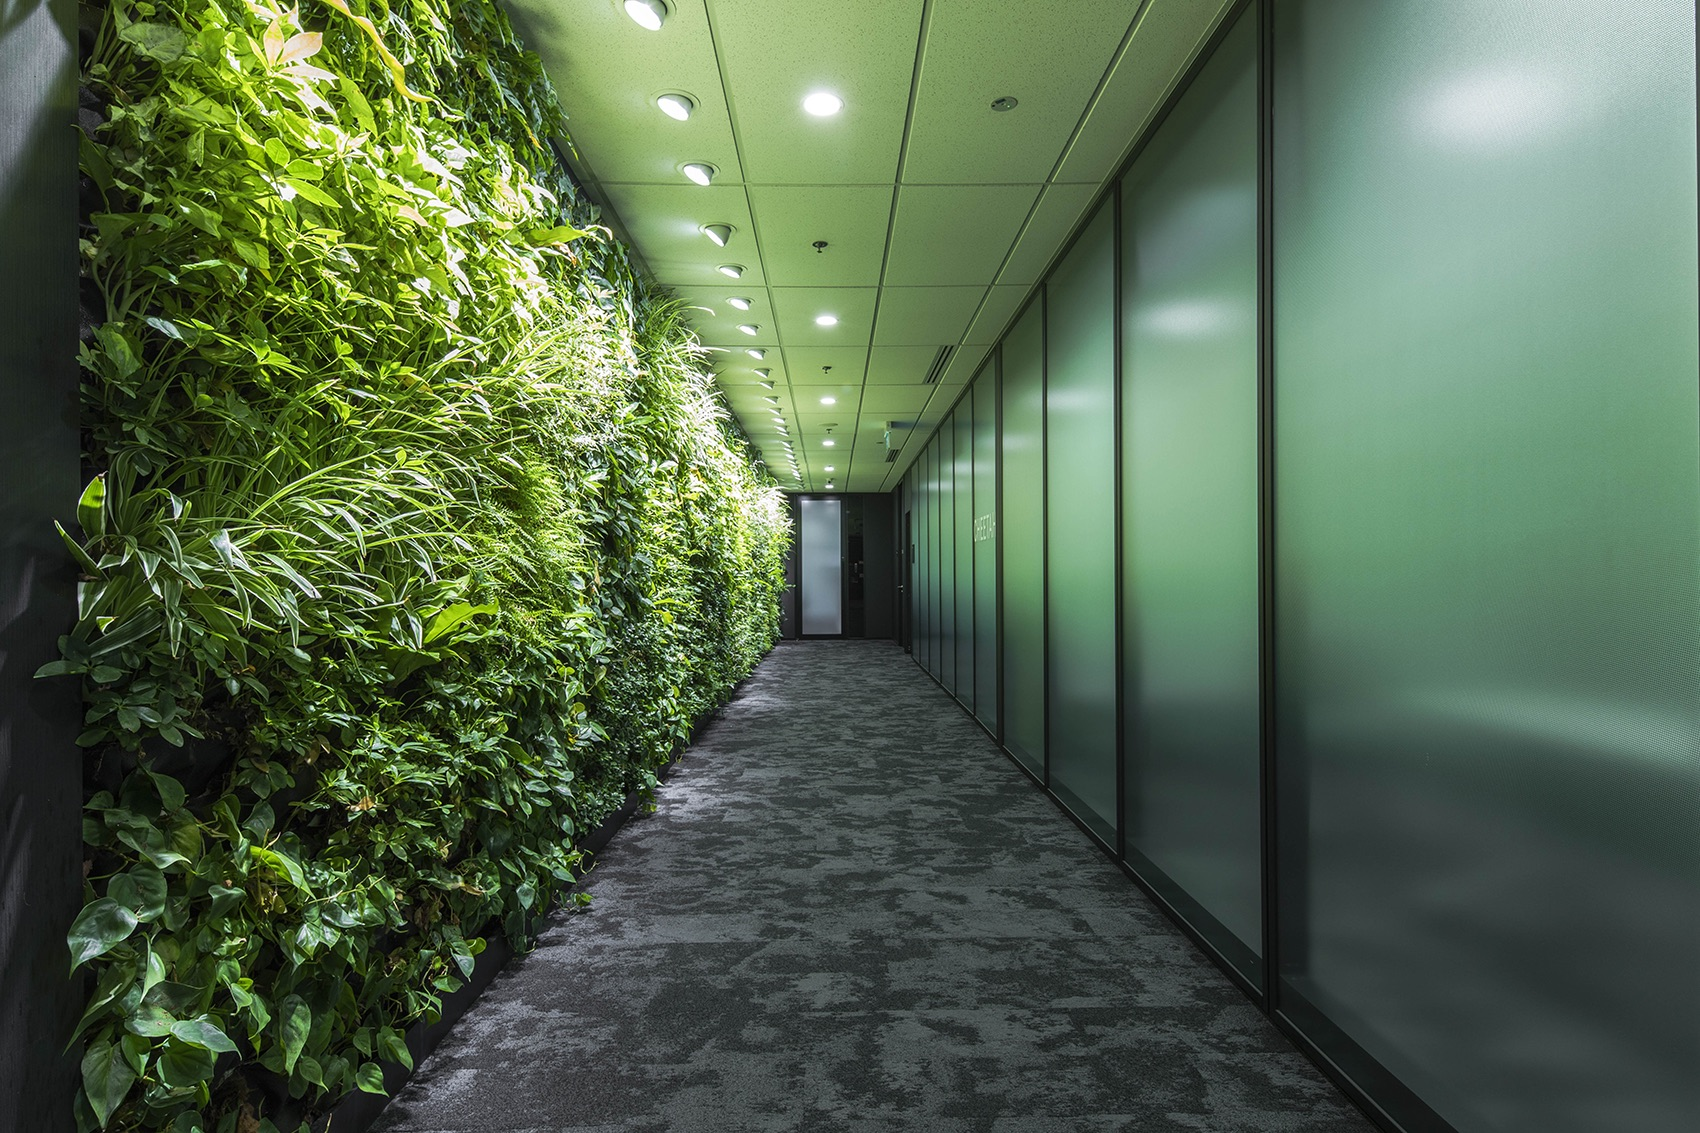 manulife-singapore-office-10